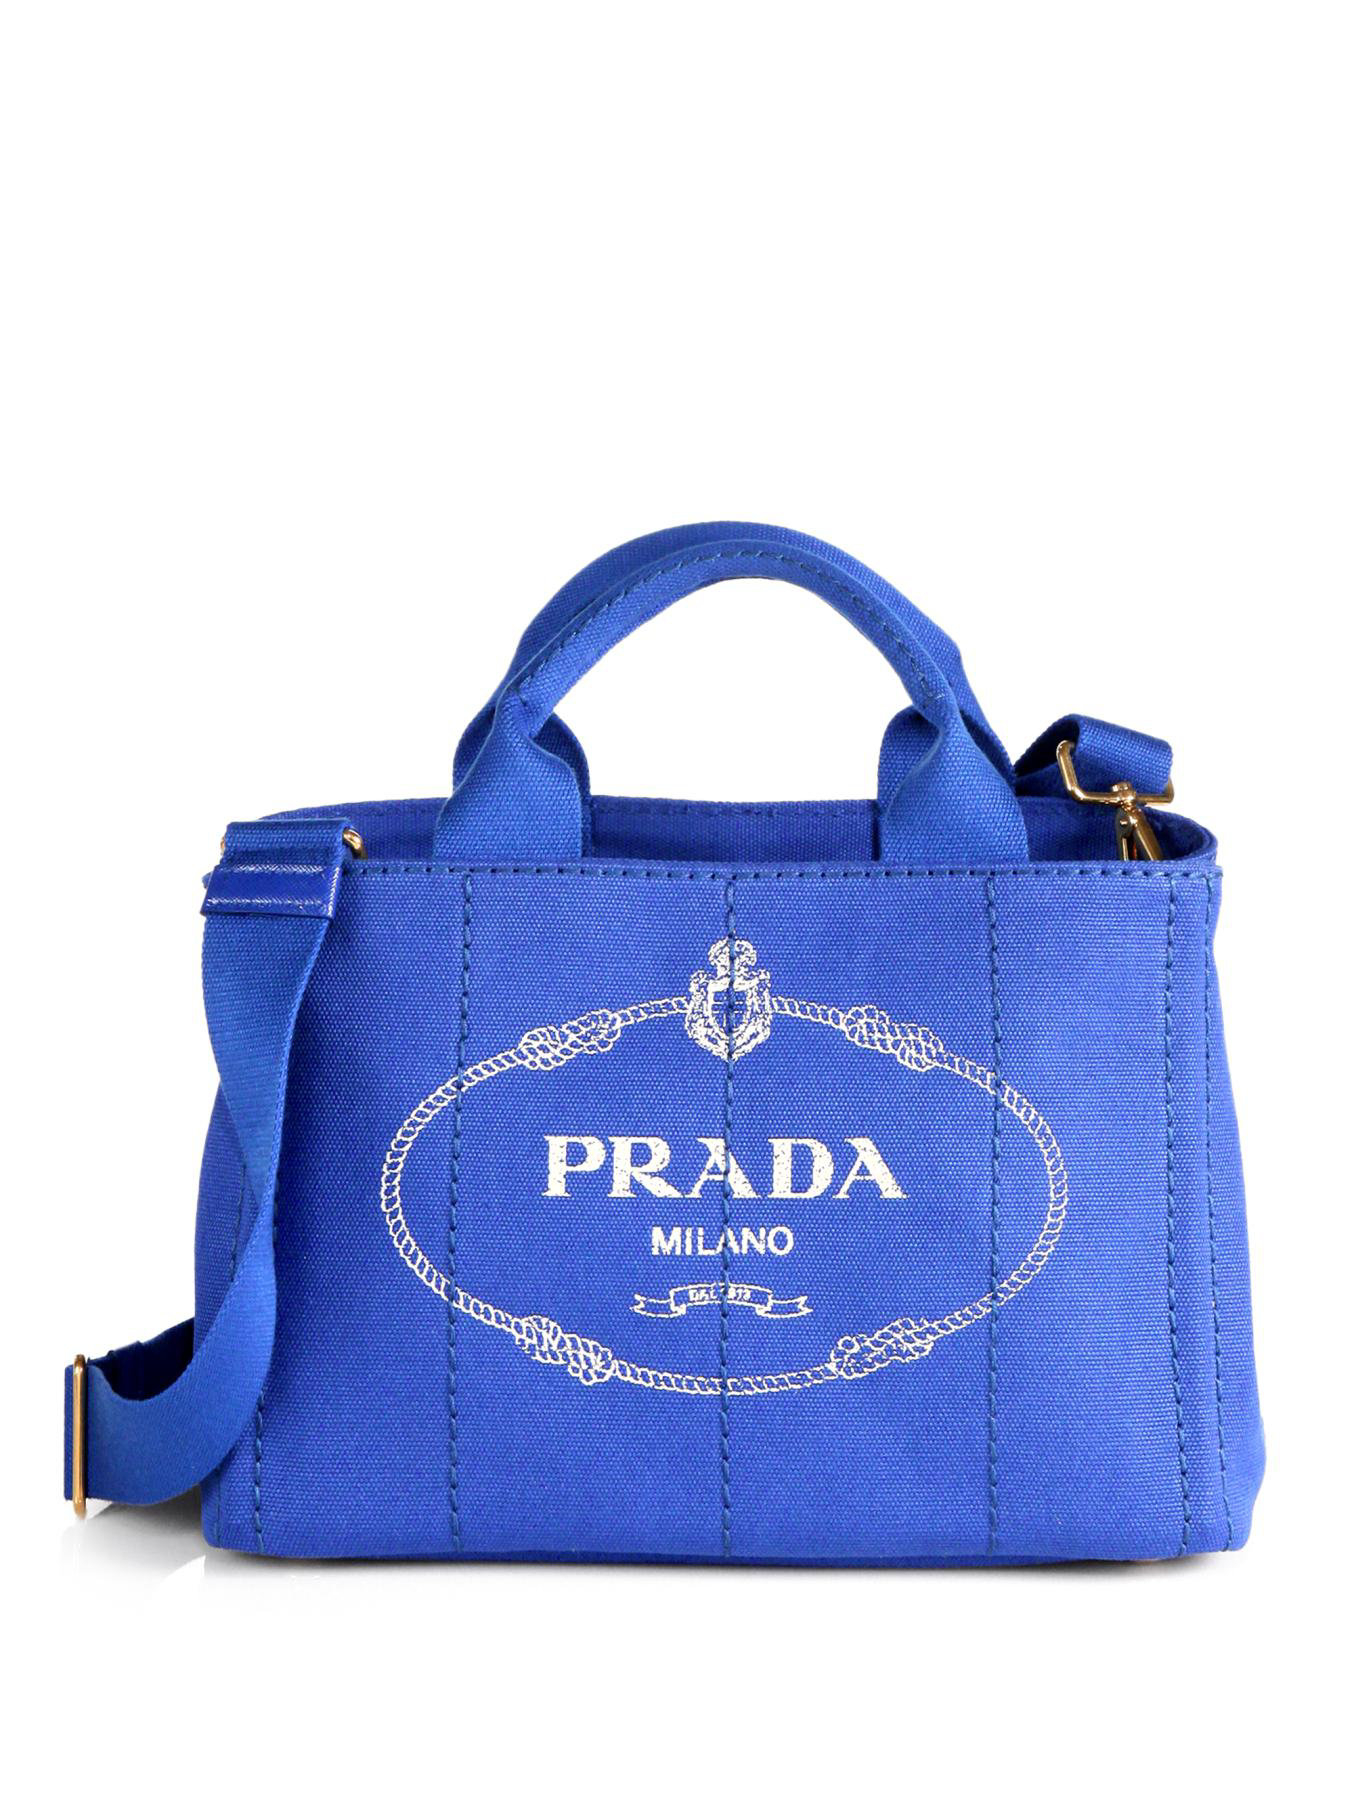 replica prada handbags cheap - prada cloth tote